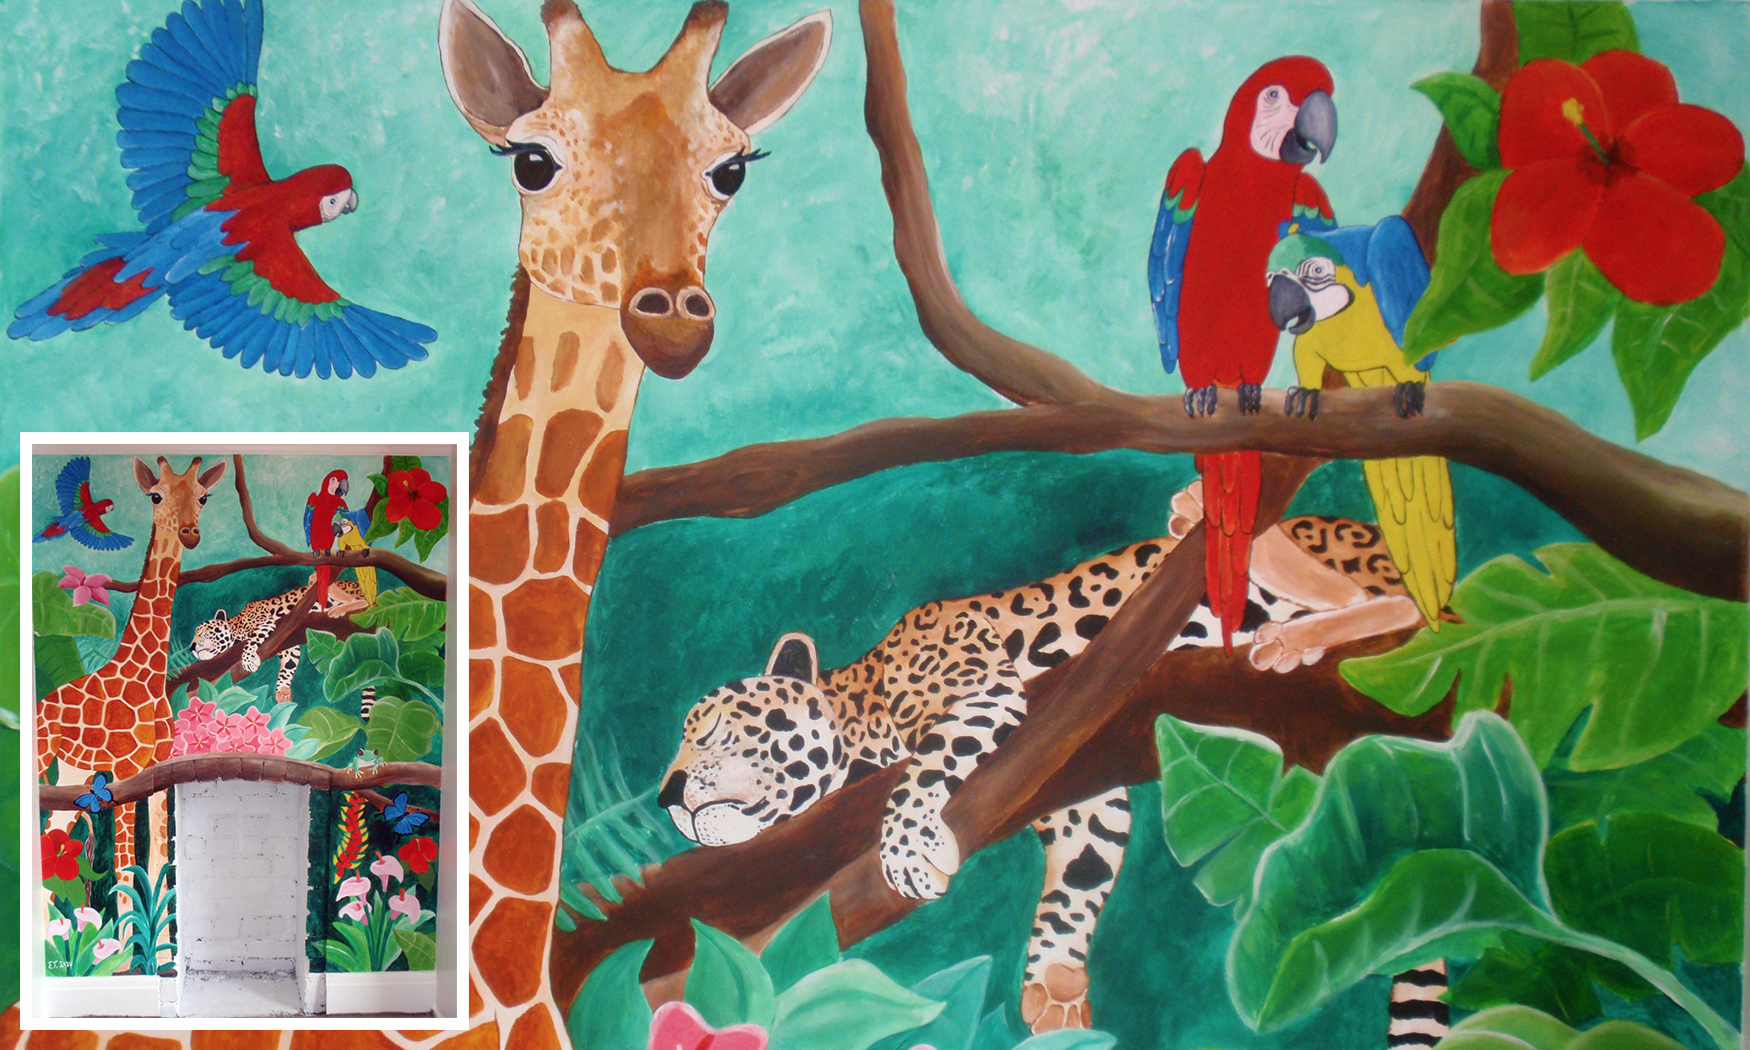 Children's Bedroom Jungle Mural, Private Commission